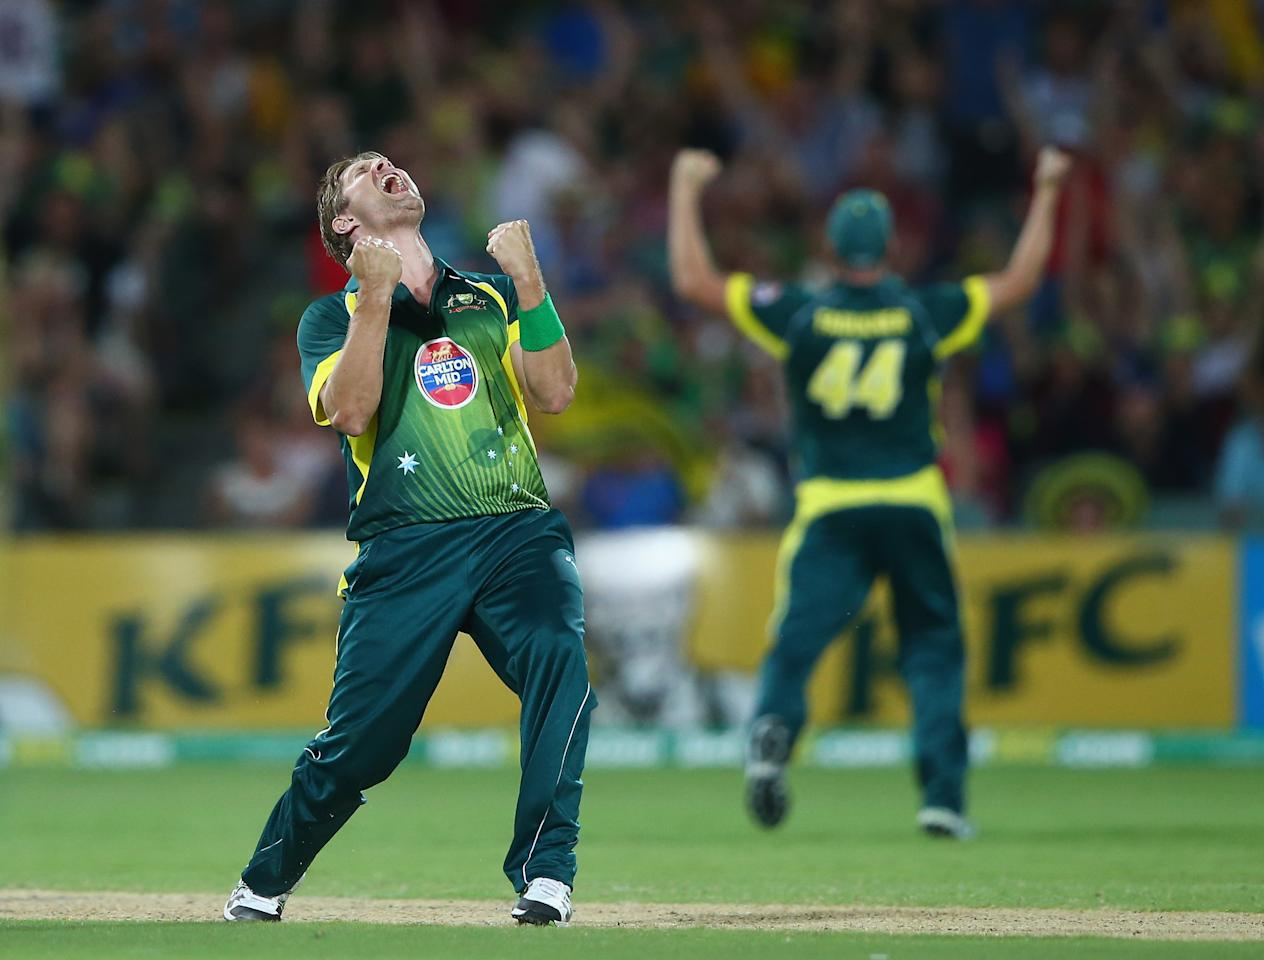 ADELAIDE, AUSTRALIA - JANUARY 26:  Shane Watson of Australia celebrtaes after taking the final wicket to give Australia victory over England during game five of the One Day International Series between Australia and England at Adelaide Oval on January 26, 2014 in Adelaide, Australia.  (Photo by Robert Cianflone/Getty Images)